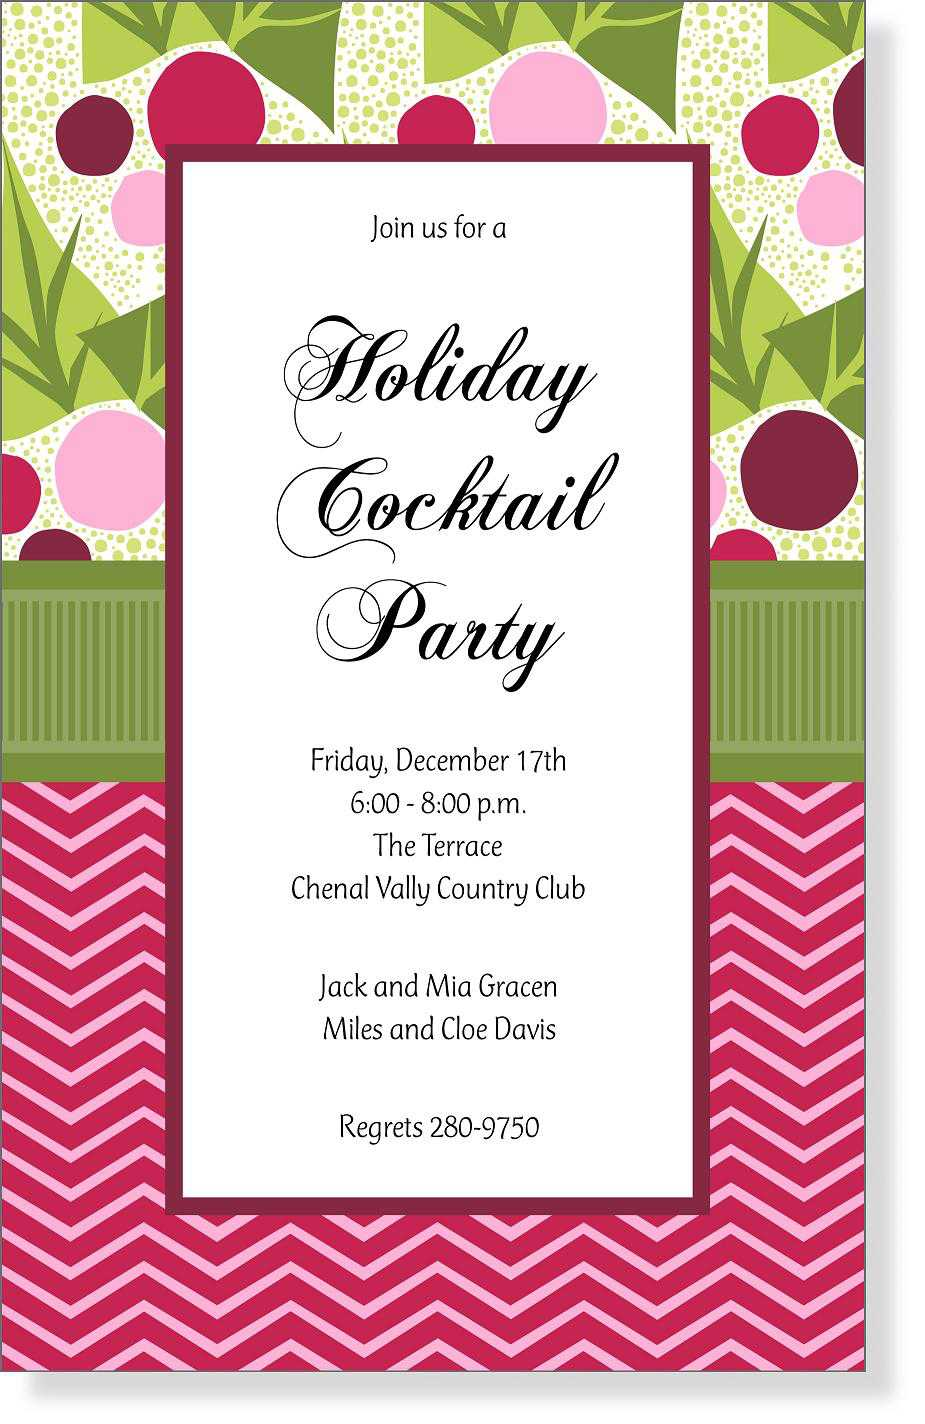 Christmas Open House Invitations - Christmas Open House ...